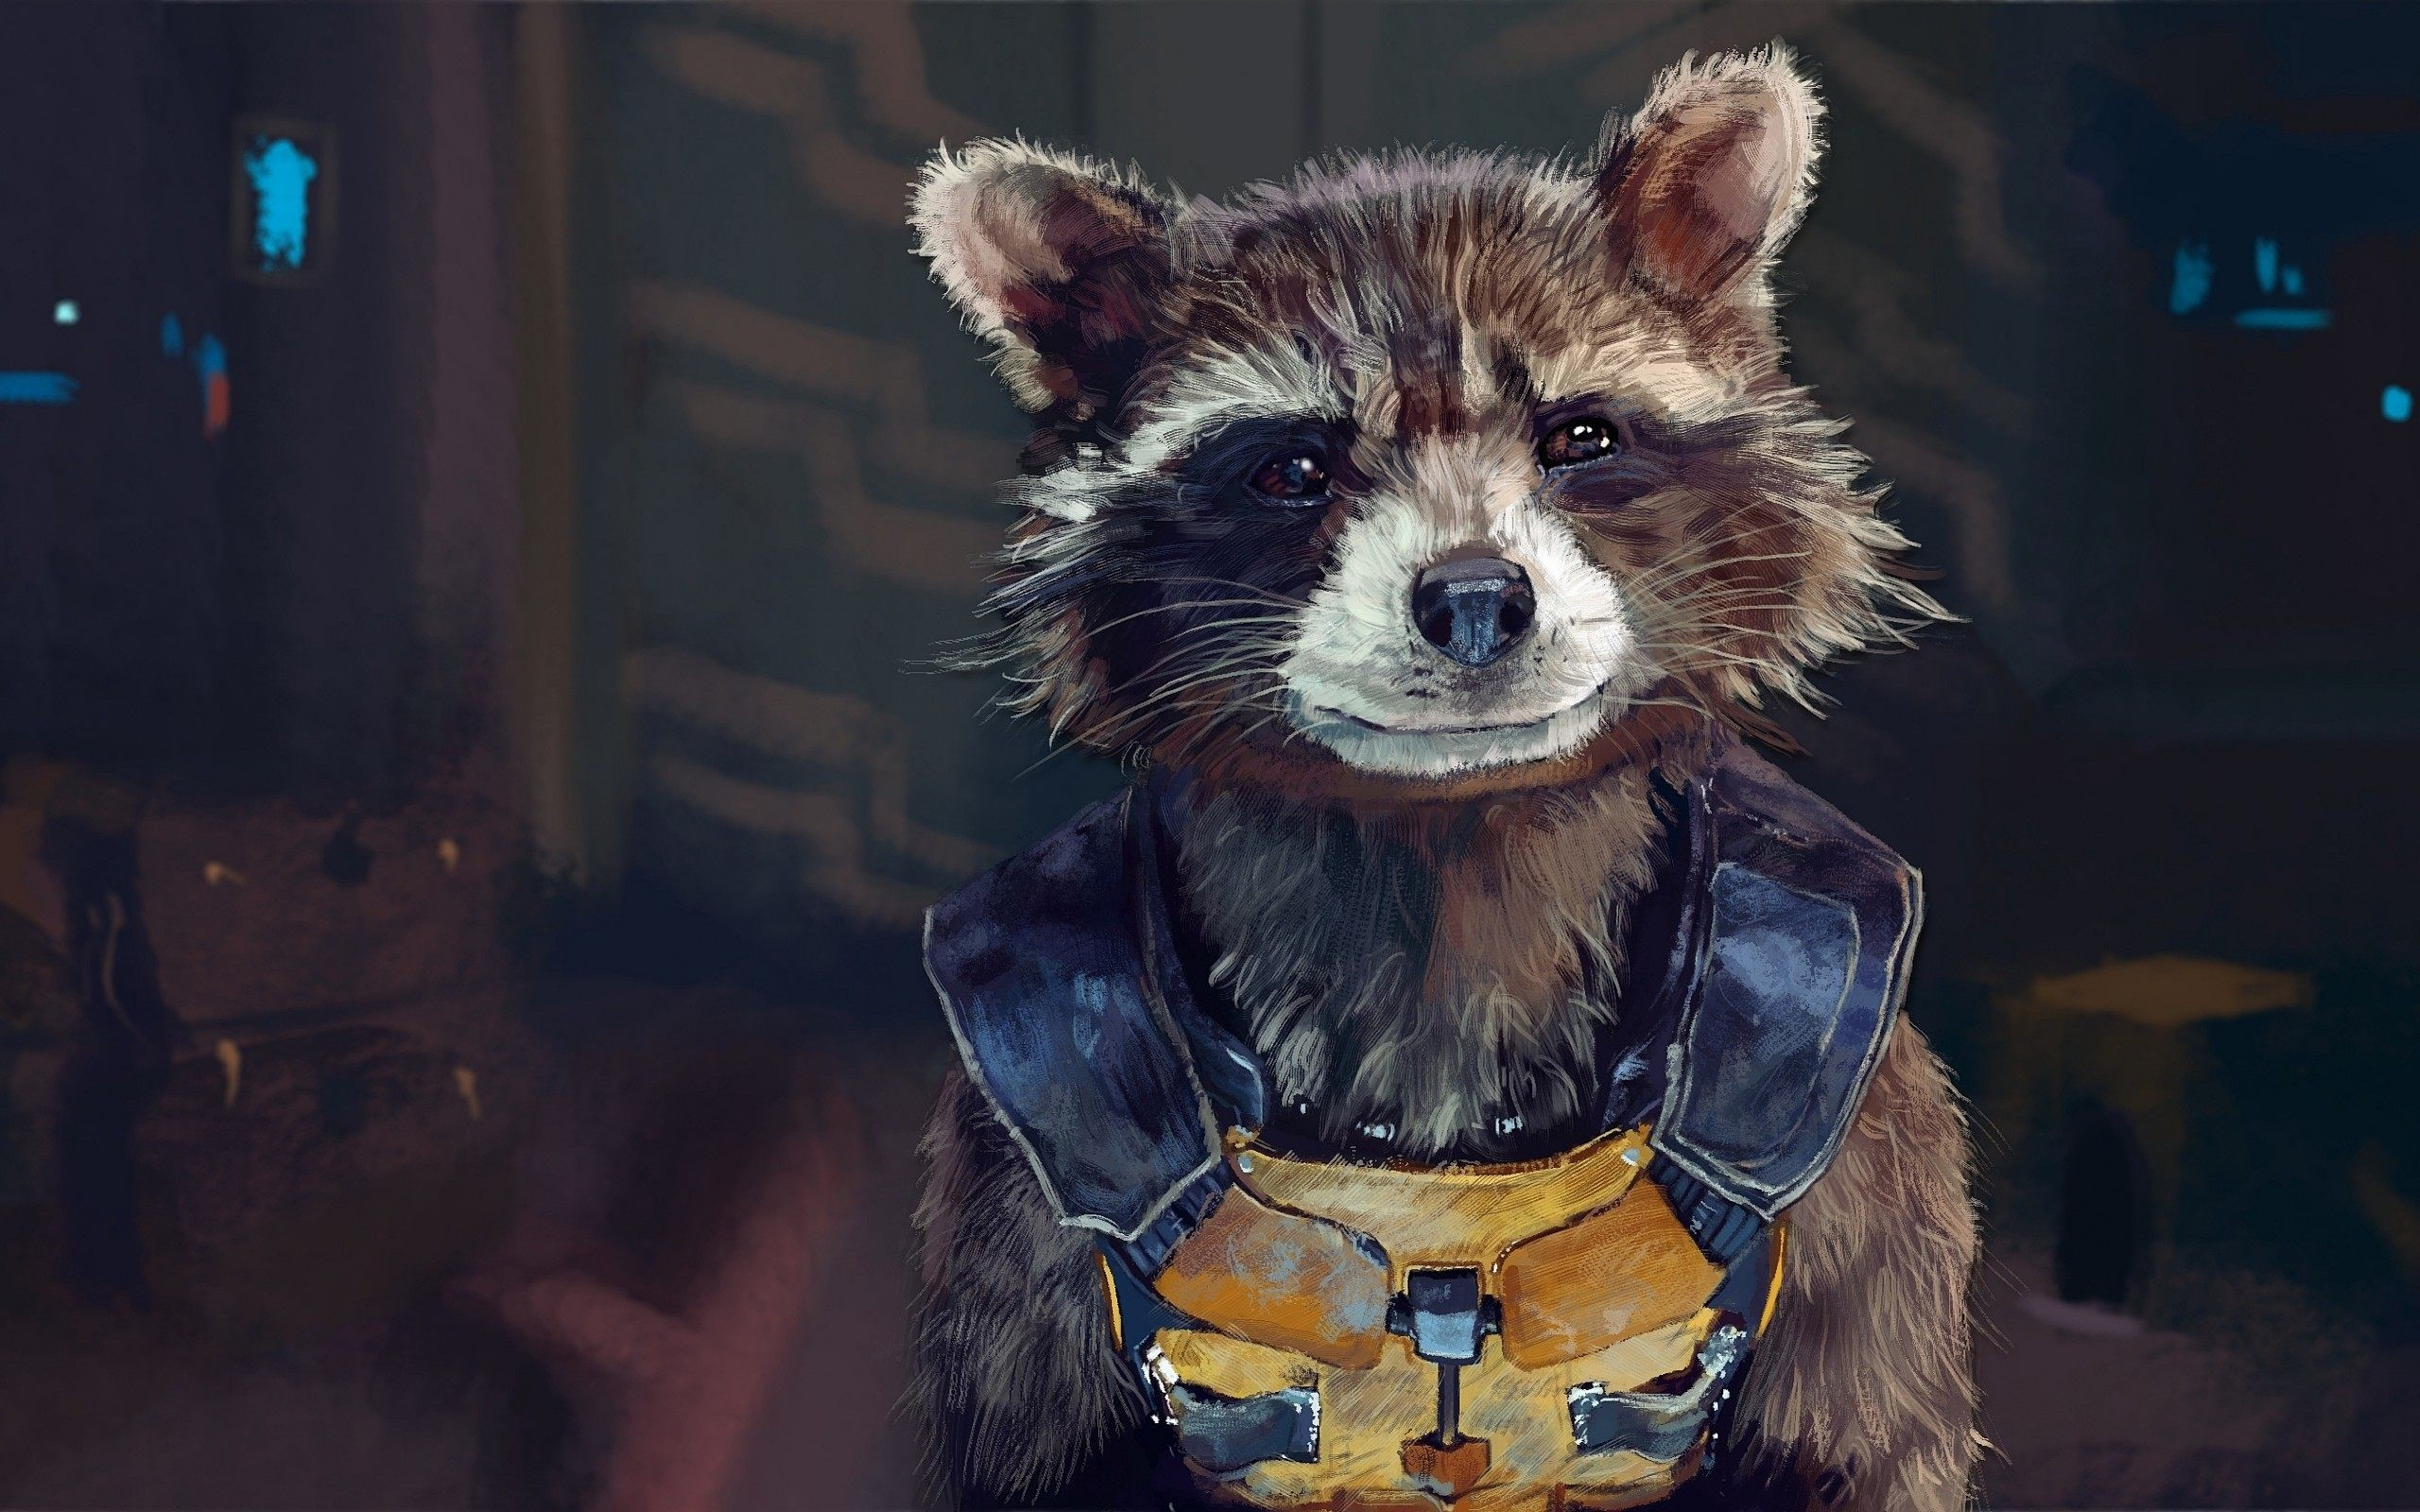 Hd Rocket Raccoon Wallpaper 67 Images